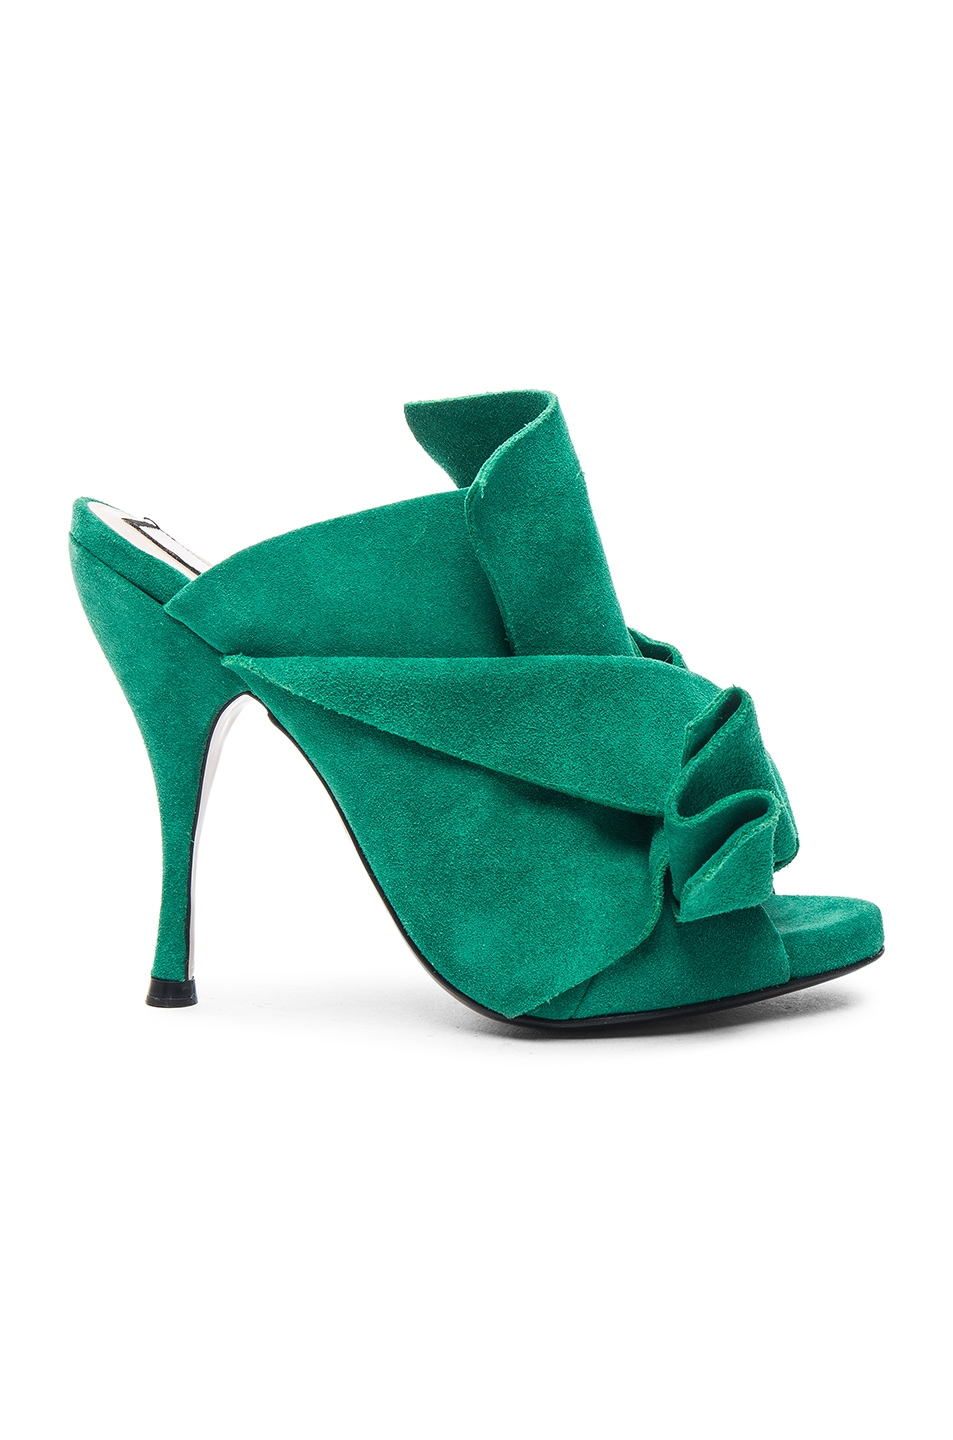 Image 1 of No. 21 Bow Mule in Green Suede